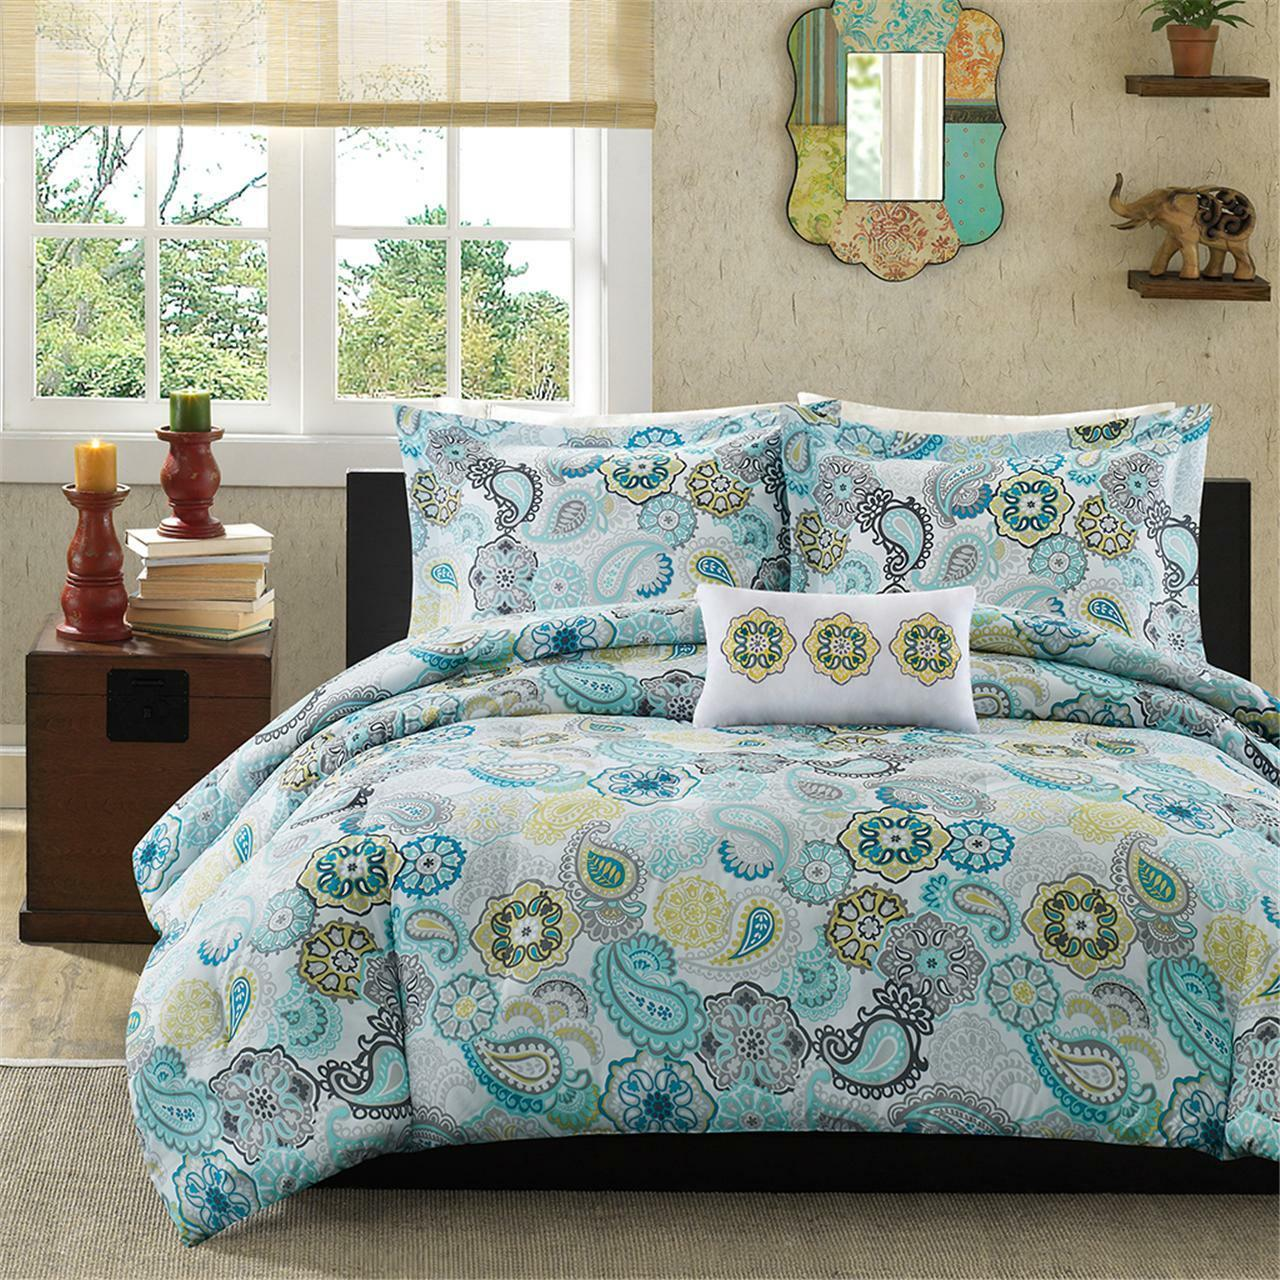 BEAUTIFUL blu AQUA TEAL grigio giallo BEACH OCEAN BOHEMIAN TROPICAL COMFORTER SET